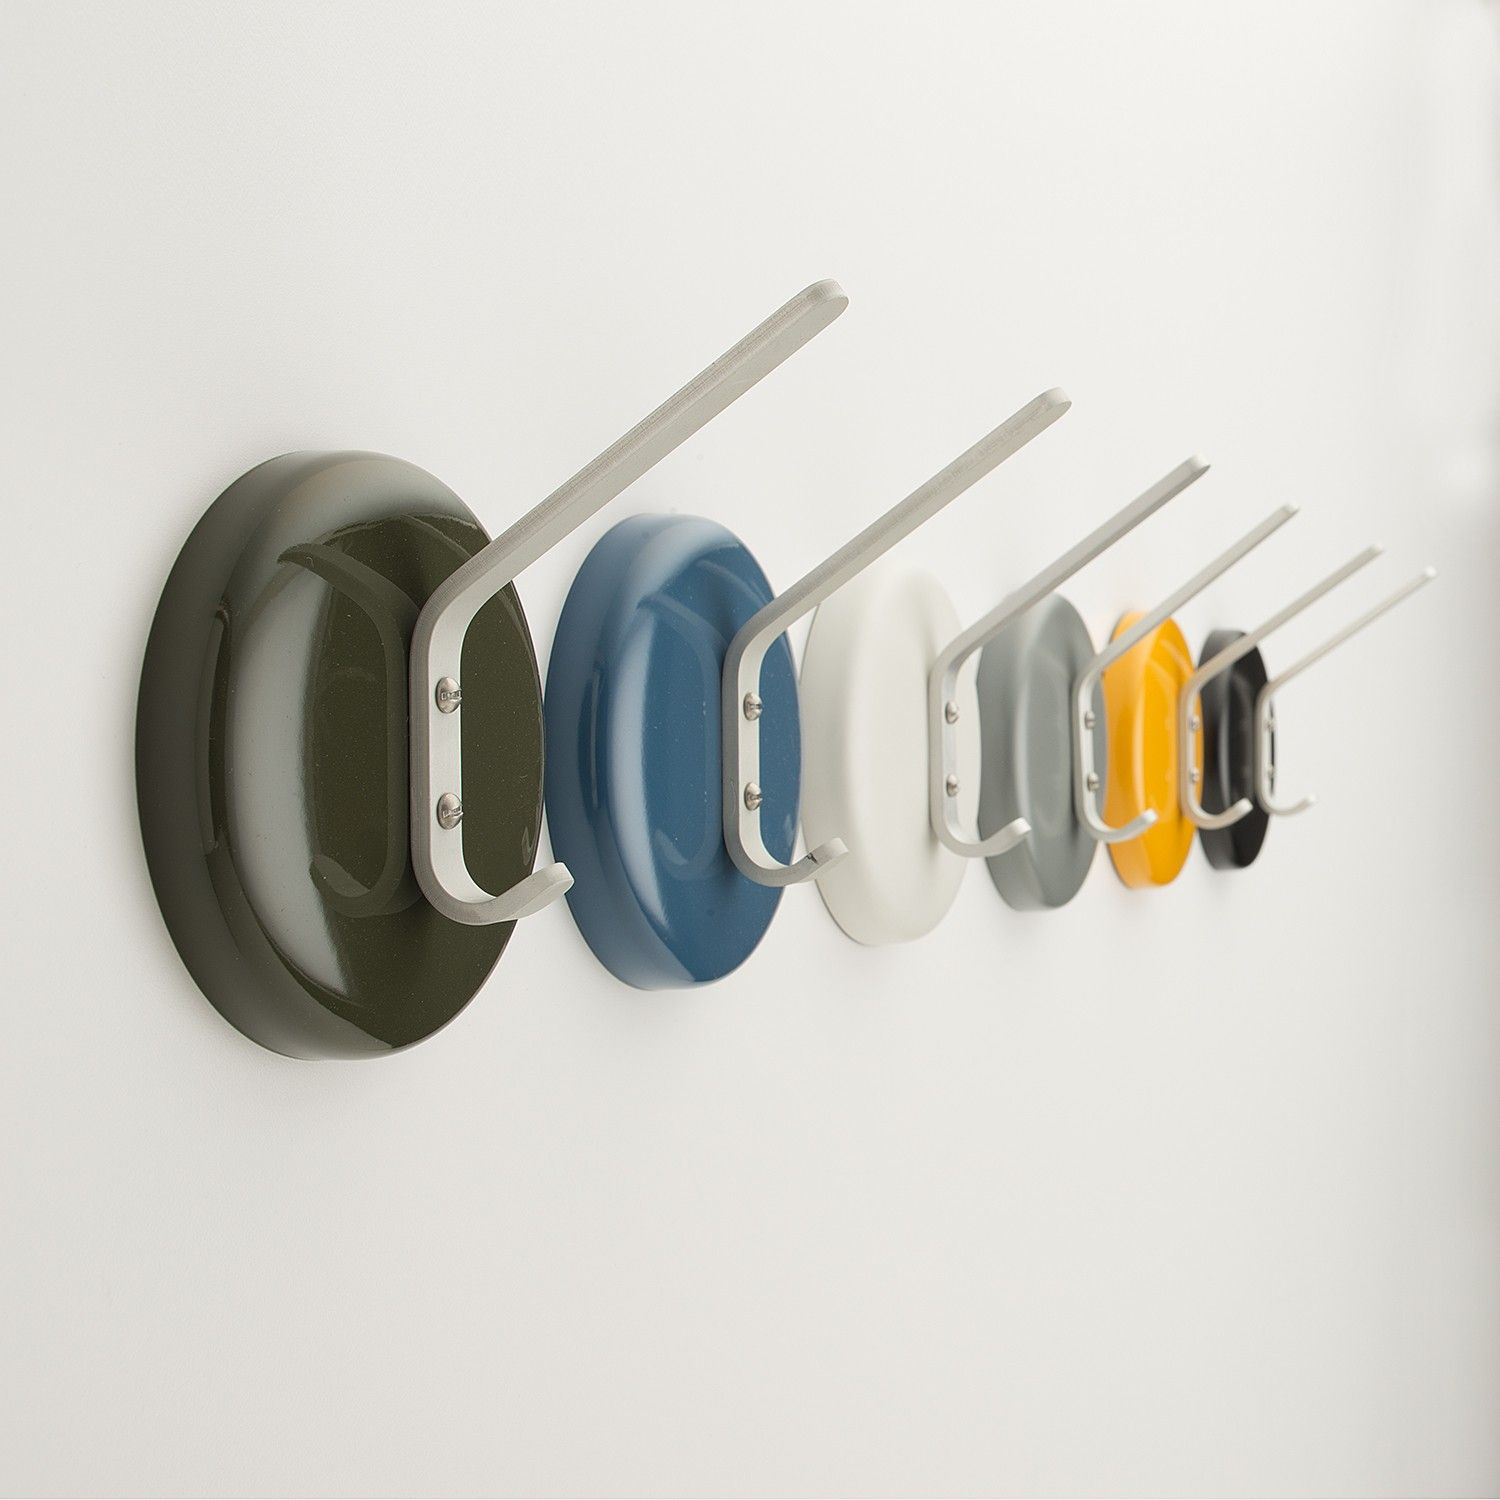 Funky Wall Hooks city wall hook | walls, schoolhouse electric and hardware